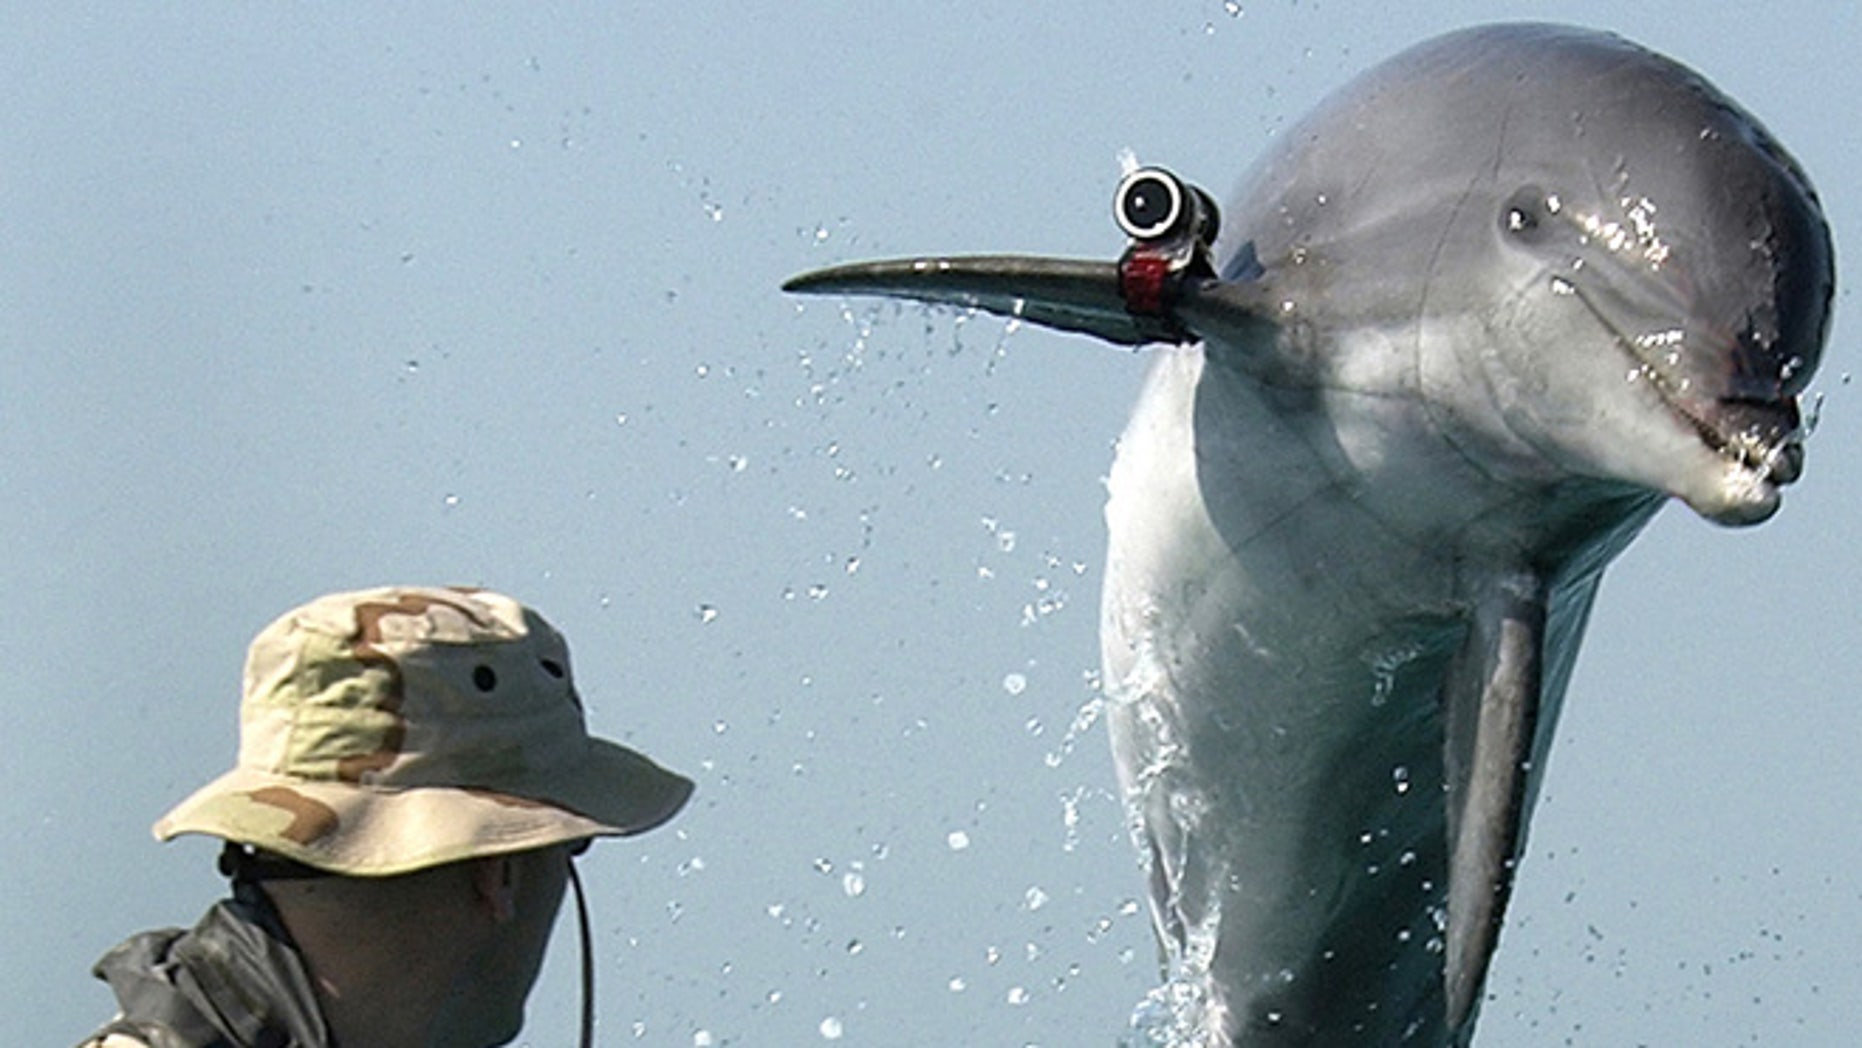 """Mar. 18, 2003: A bottle nose dolphin trained by the U.S. Navy to detect mines leaps out of the water in front Sgt. Andrew Garrett while training near the USS Gunston Hall (LSD 44) in the Arabian Gulf. Attached to the dolphin's pectoral fin is a """"pinger"""" that allows the handler to keep track of the dolphin when out of sight."""